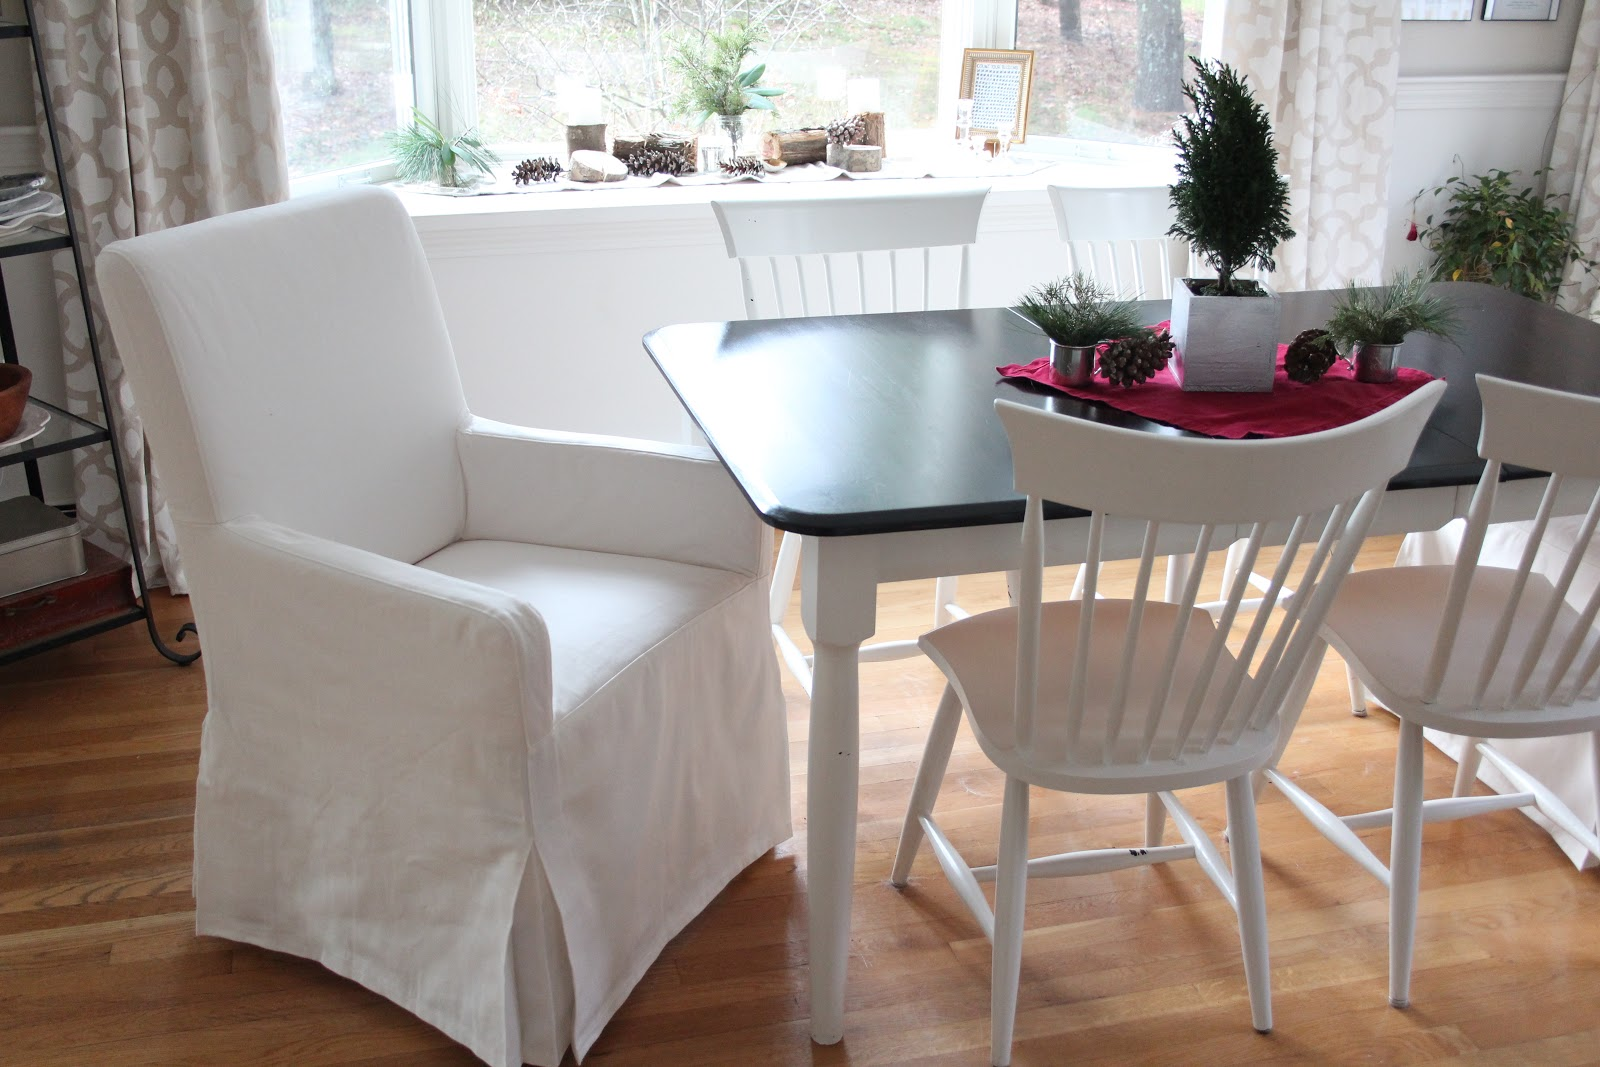 Chair Covers New Year Baby Bouncy Pink Getting The Wrinkles Out Of Slipcovers Shine Your Light